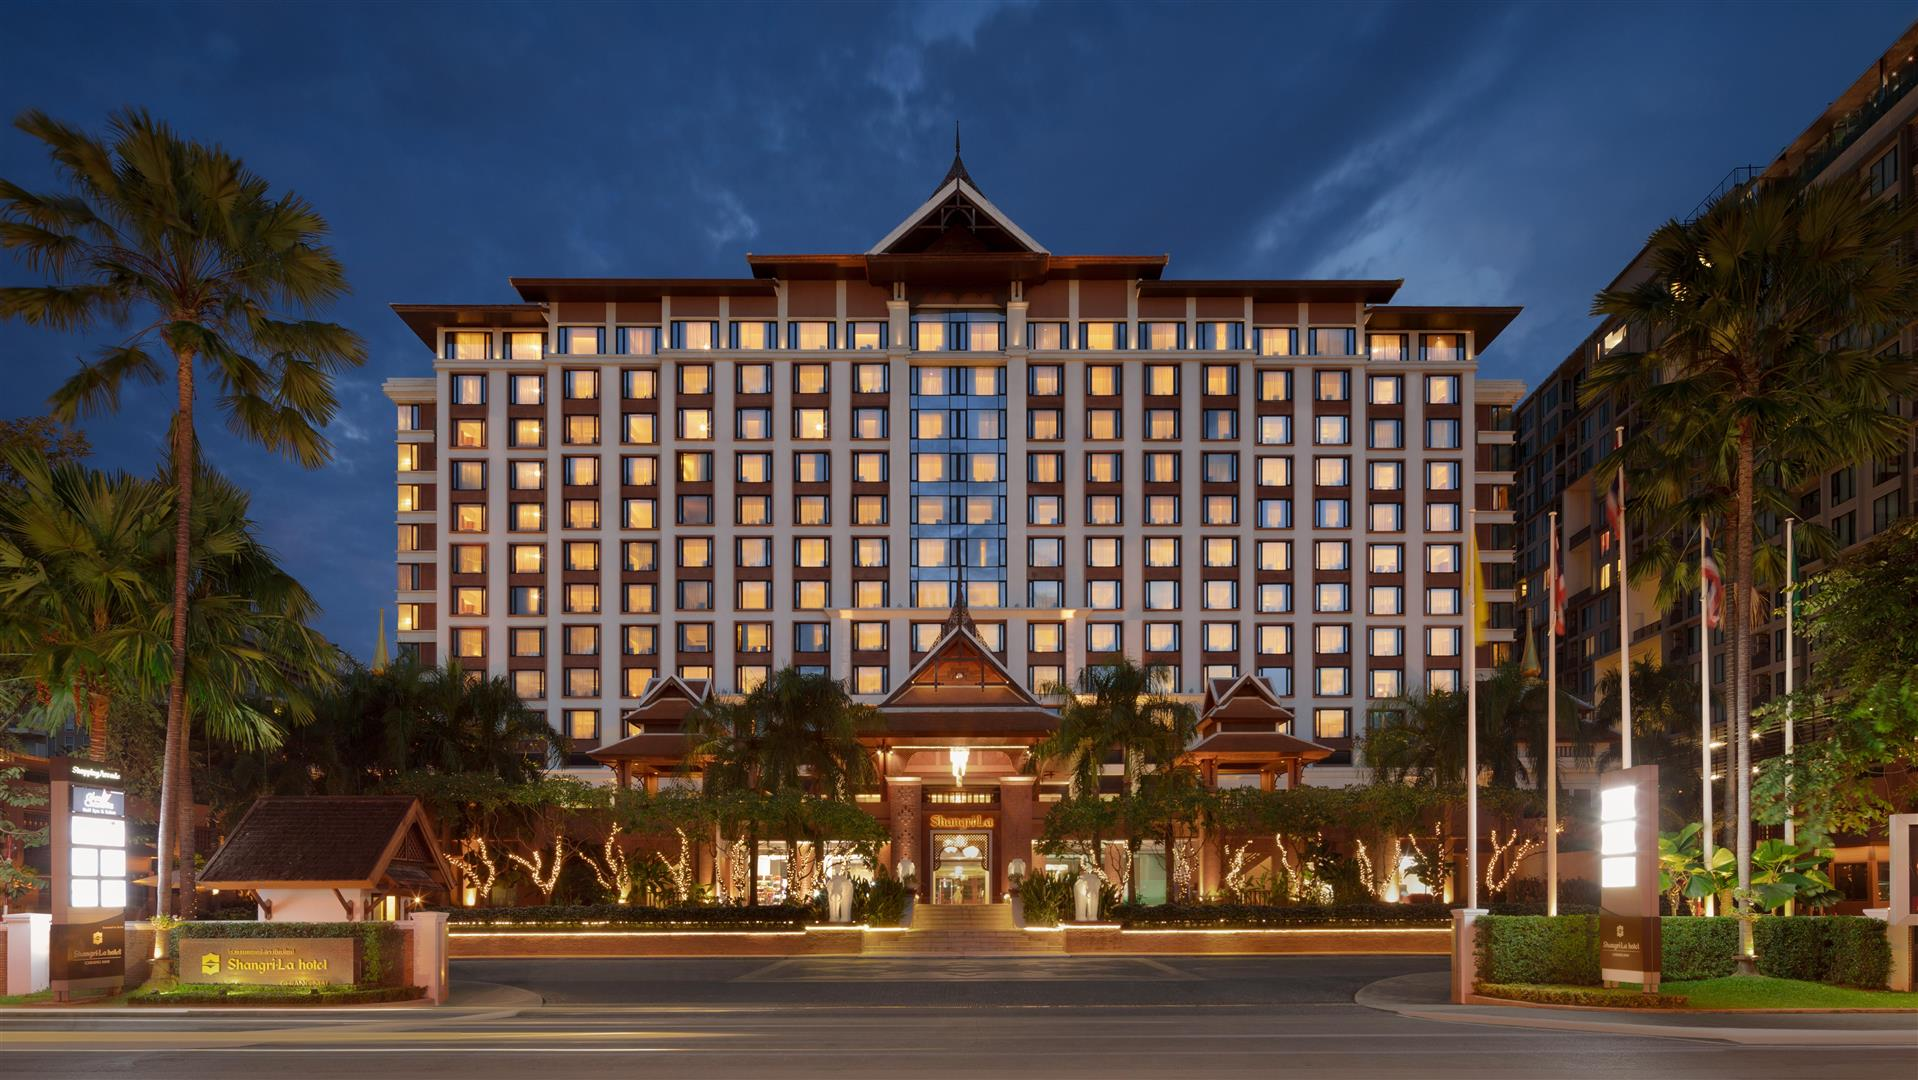 Shangri La Hotel - Top 5 best hotels and resorts in Chiang Mai